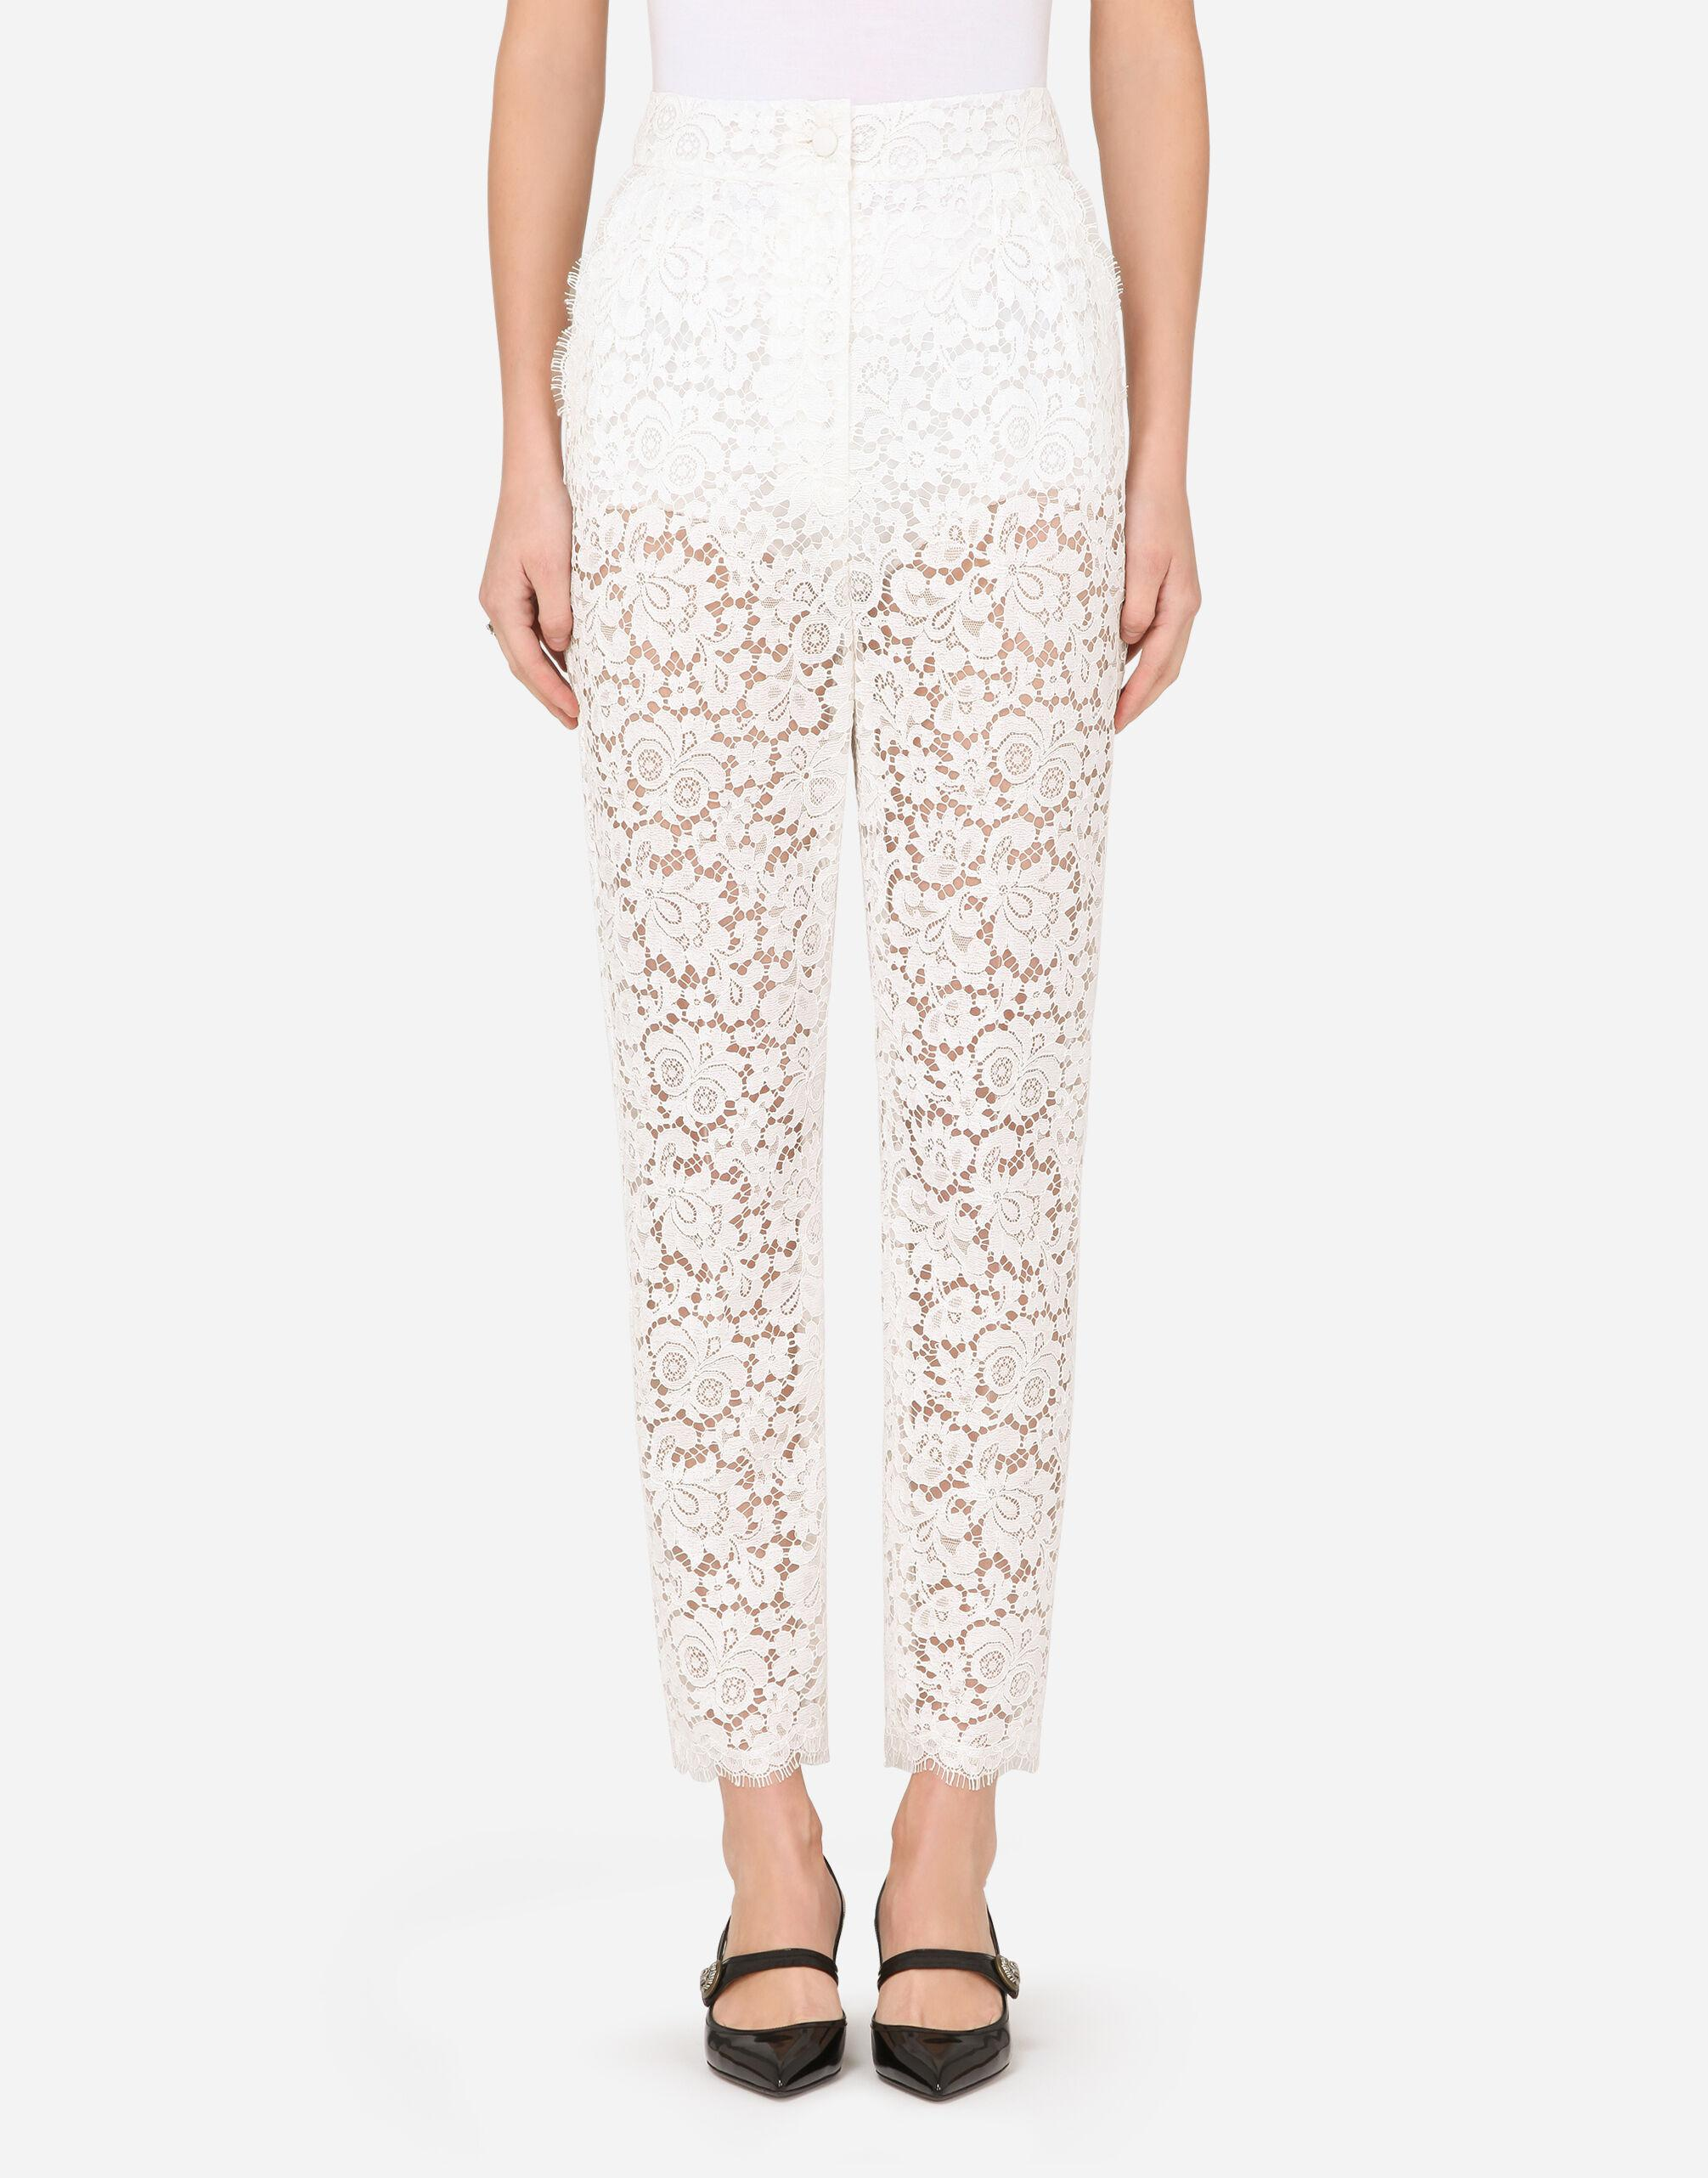 High-waisted cordonetto lace pants